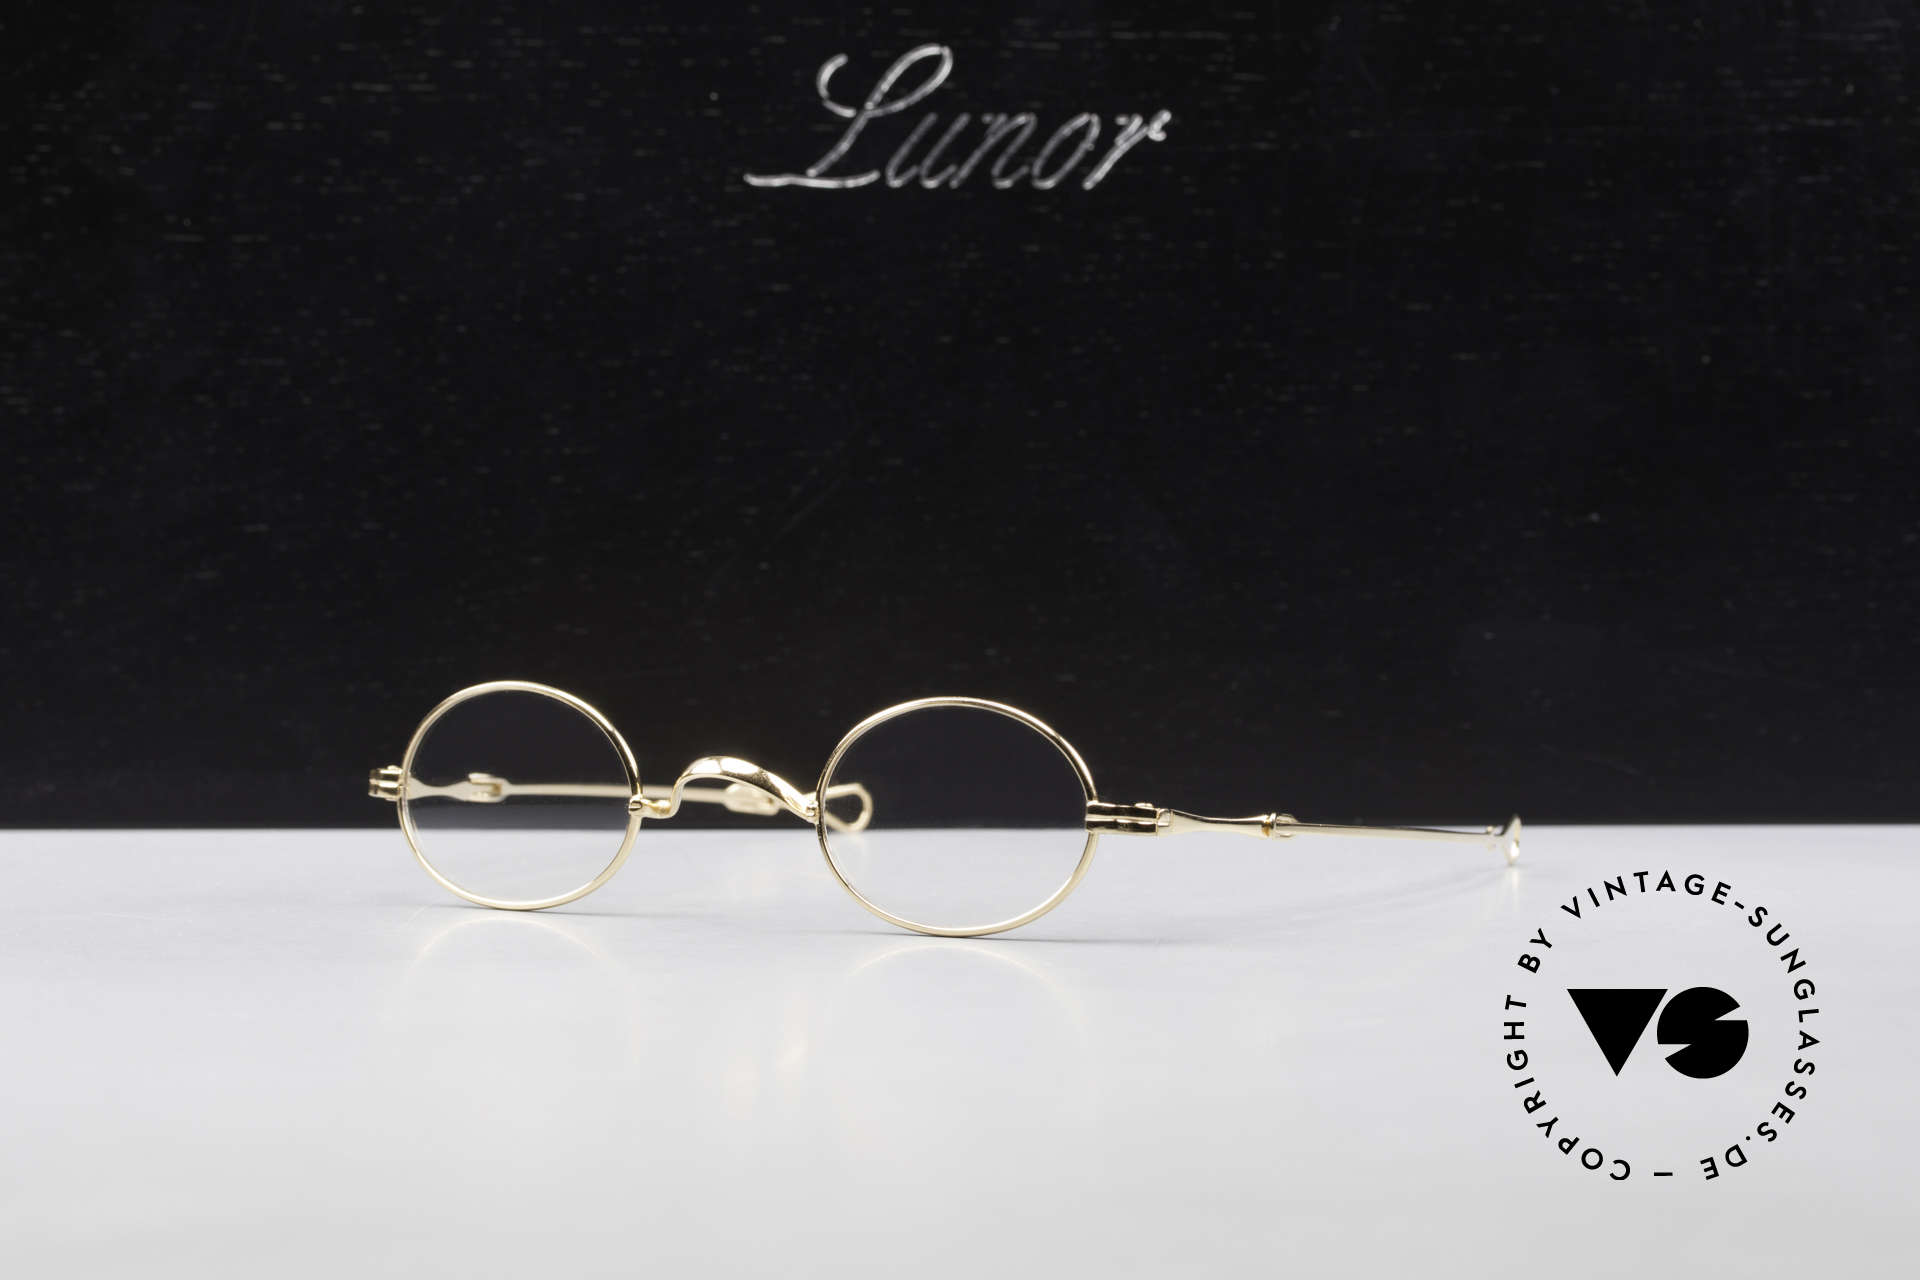 Lunor I 04 Telescopic XS Gold Glasses Slide Temples, Size: extra small, Made for Men and Women